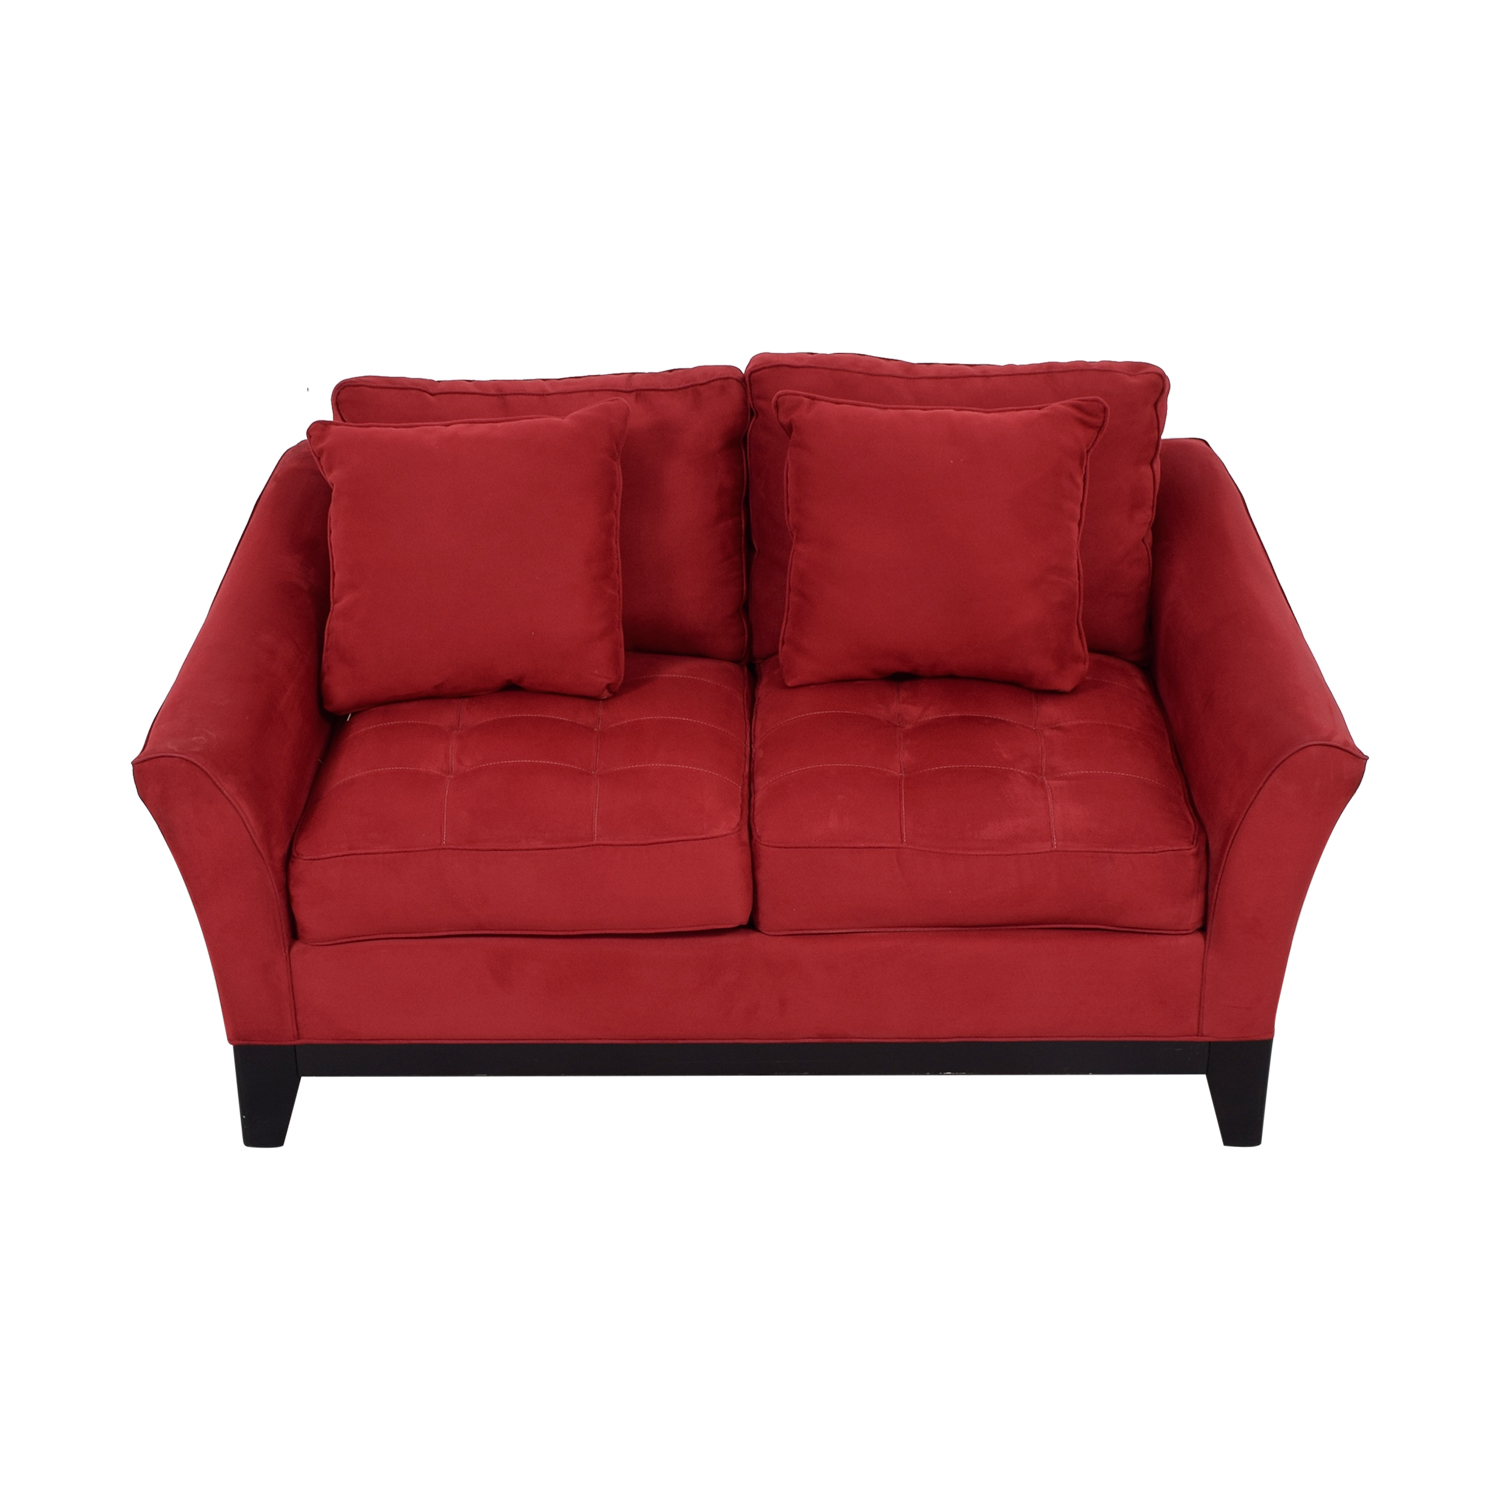 Raymour & Flanigan Raymour & Flanigan Red Microfiber Loveseat on sale